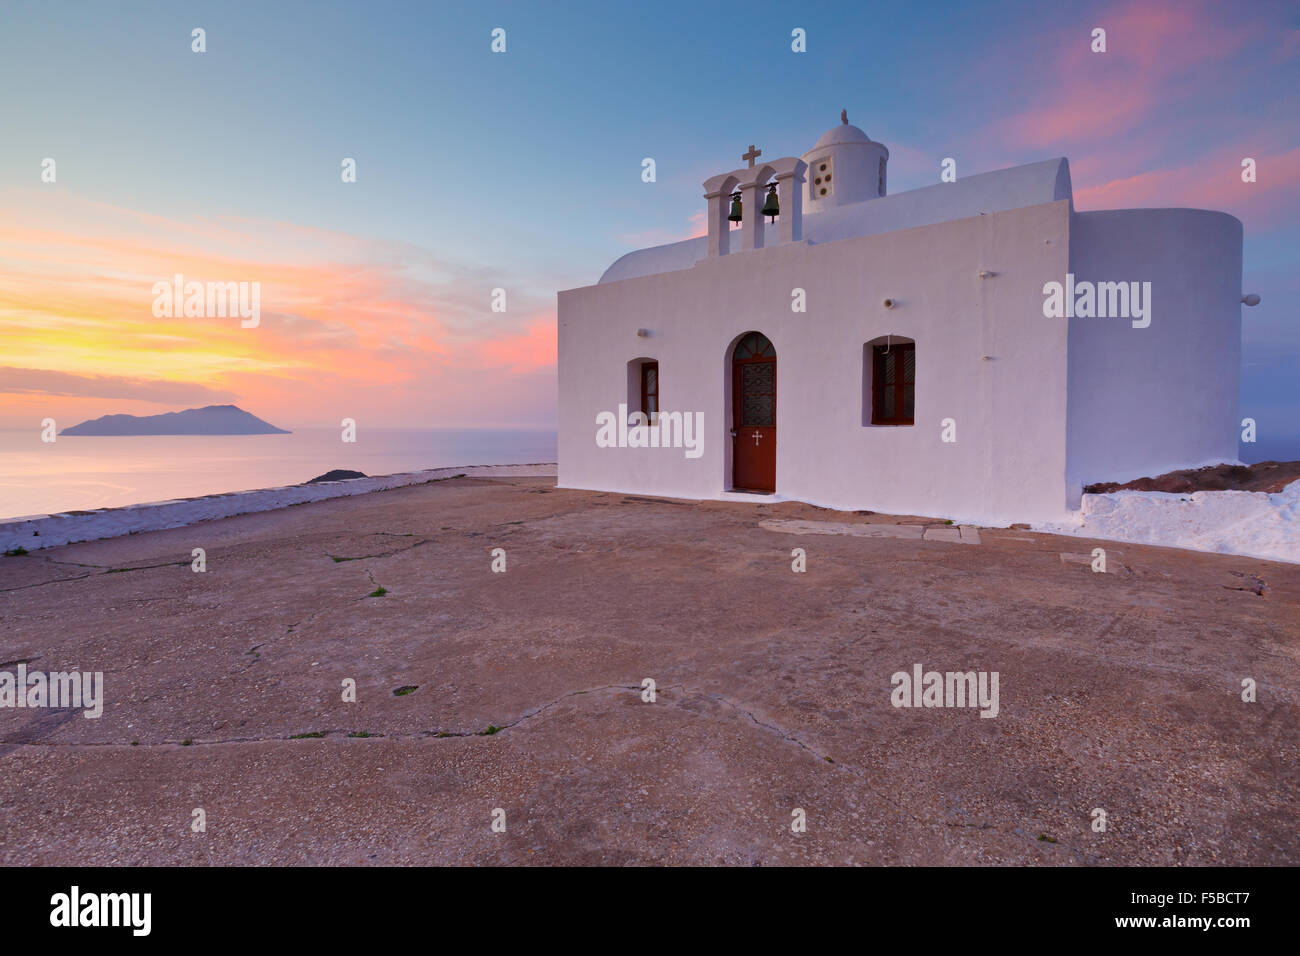 Church atop a hill over Plaka village, Milos island, Greece. - Stock Image